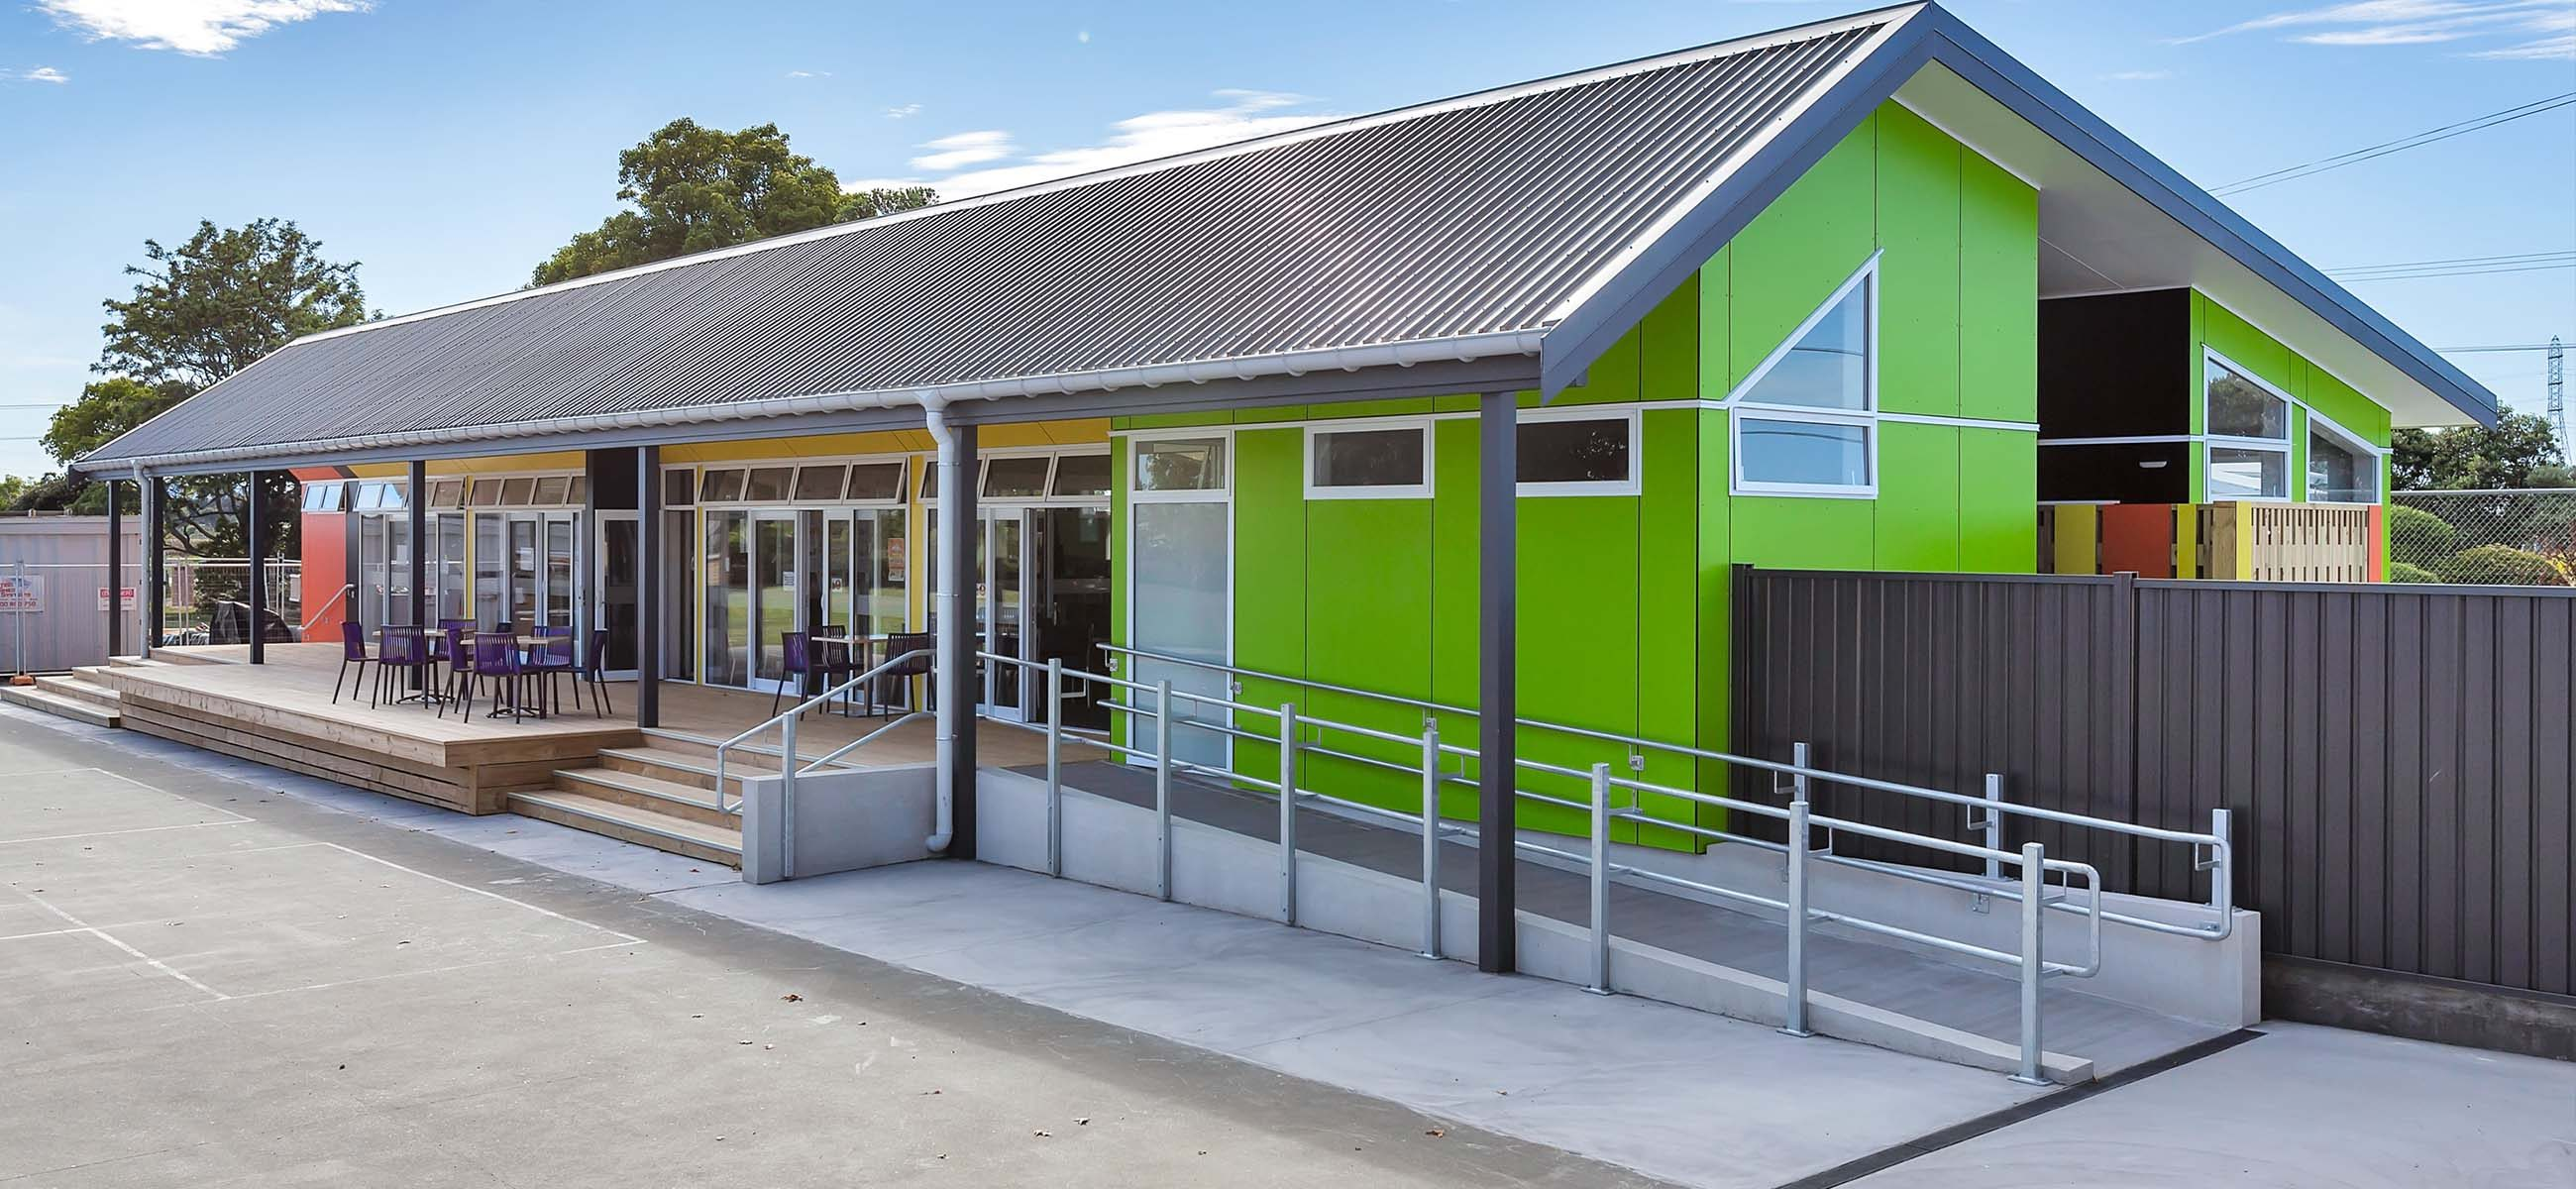 new school building construction, steel shed systems